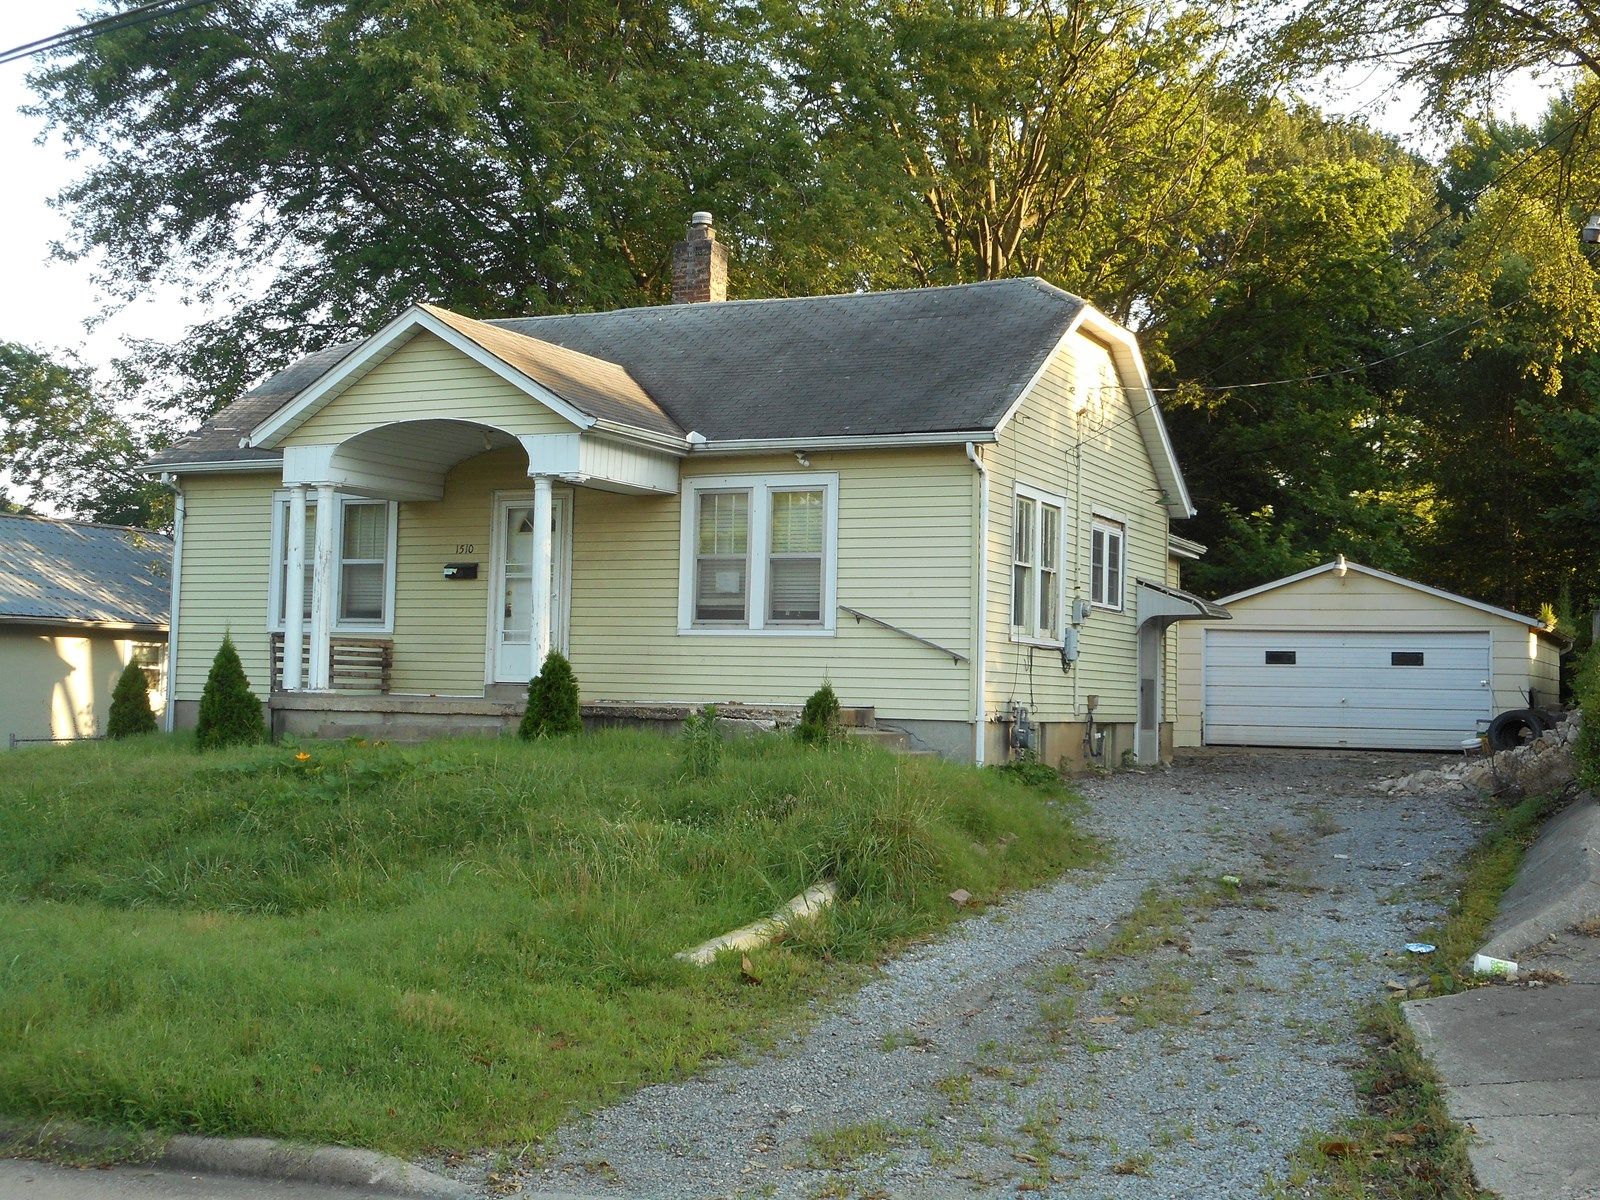 For Sale: 3 bedroom, 2 bath house in Cape Girardeau, MO